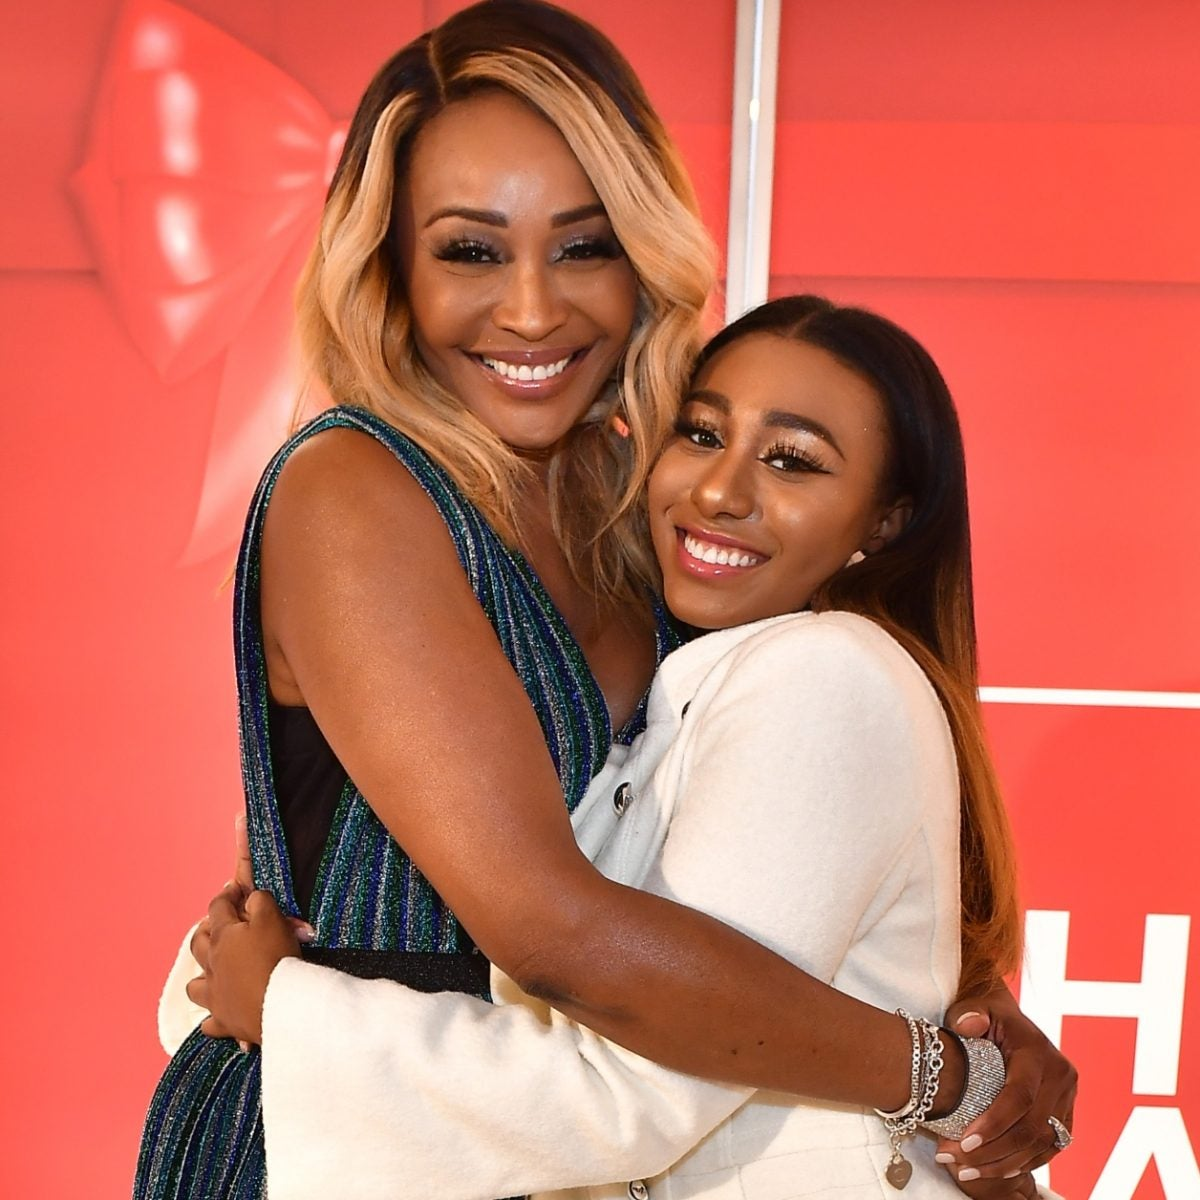 Cynthia Bailey's Daughter Debunks Myth That Her Mom Funds Her Lifestyle: 'I Make Over Six Figures On My Own'